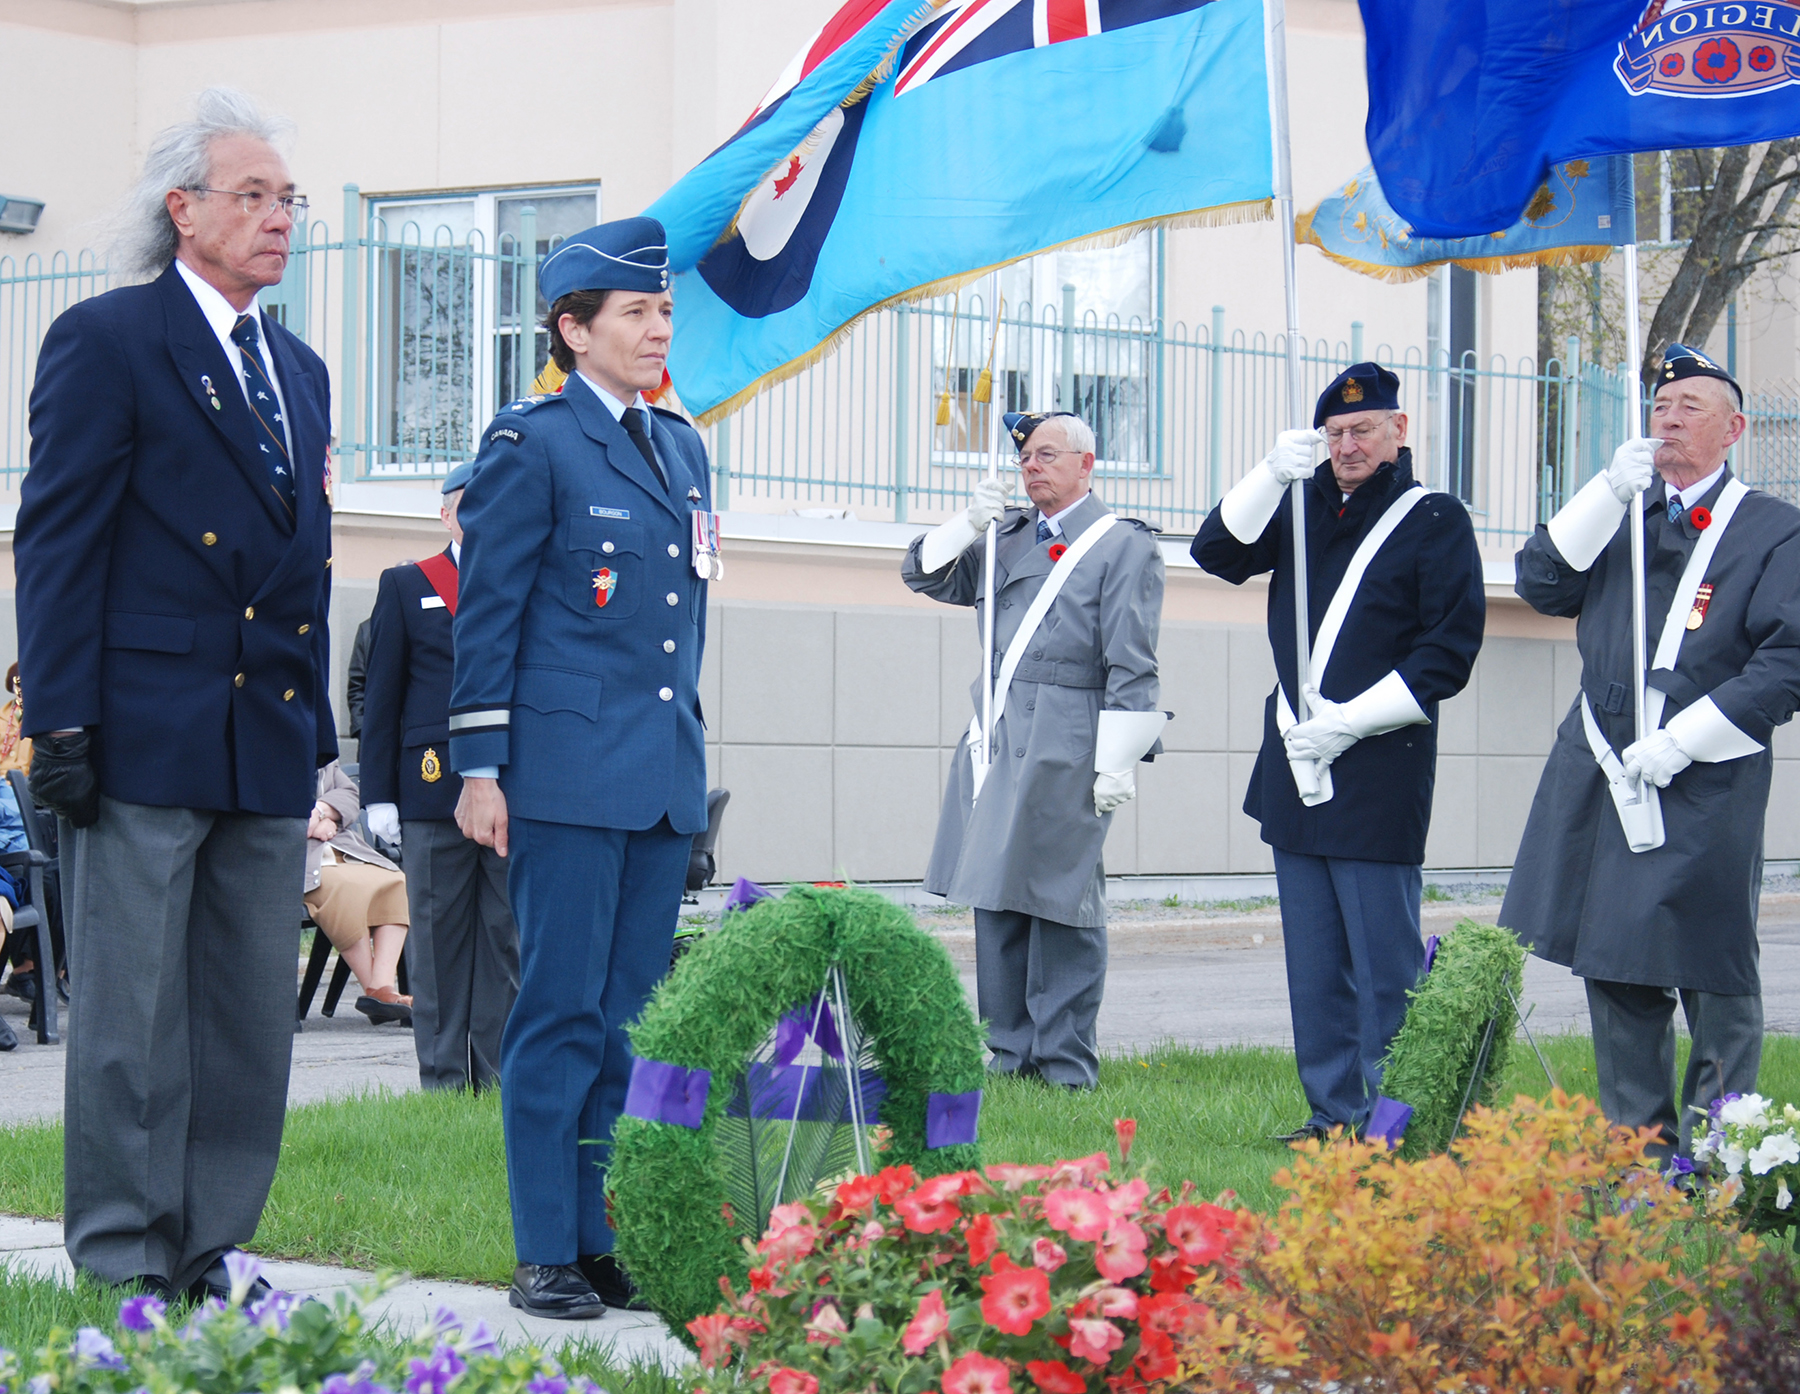 Brigadier-General Lise Bourgon pauses for a moment of silence during the 60th anniversary commemorative ceremony of the CF-100 crash in Orléans, Ontario.